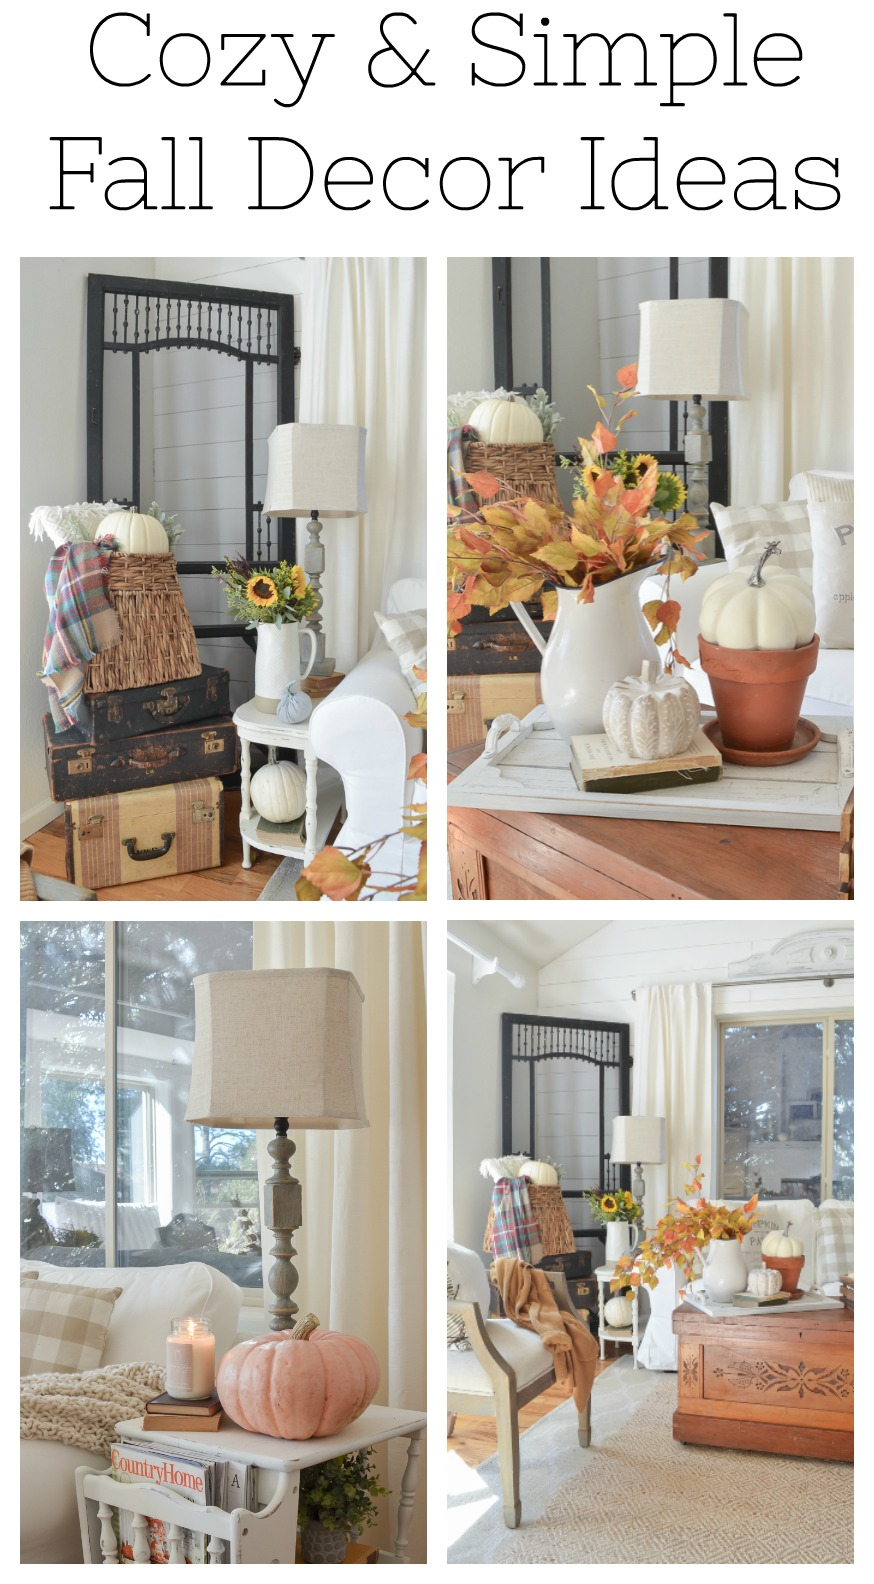 Cozy and simple fall decor ideas. Easy fall decorating ideas for any room in your home!